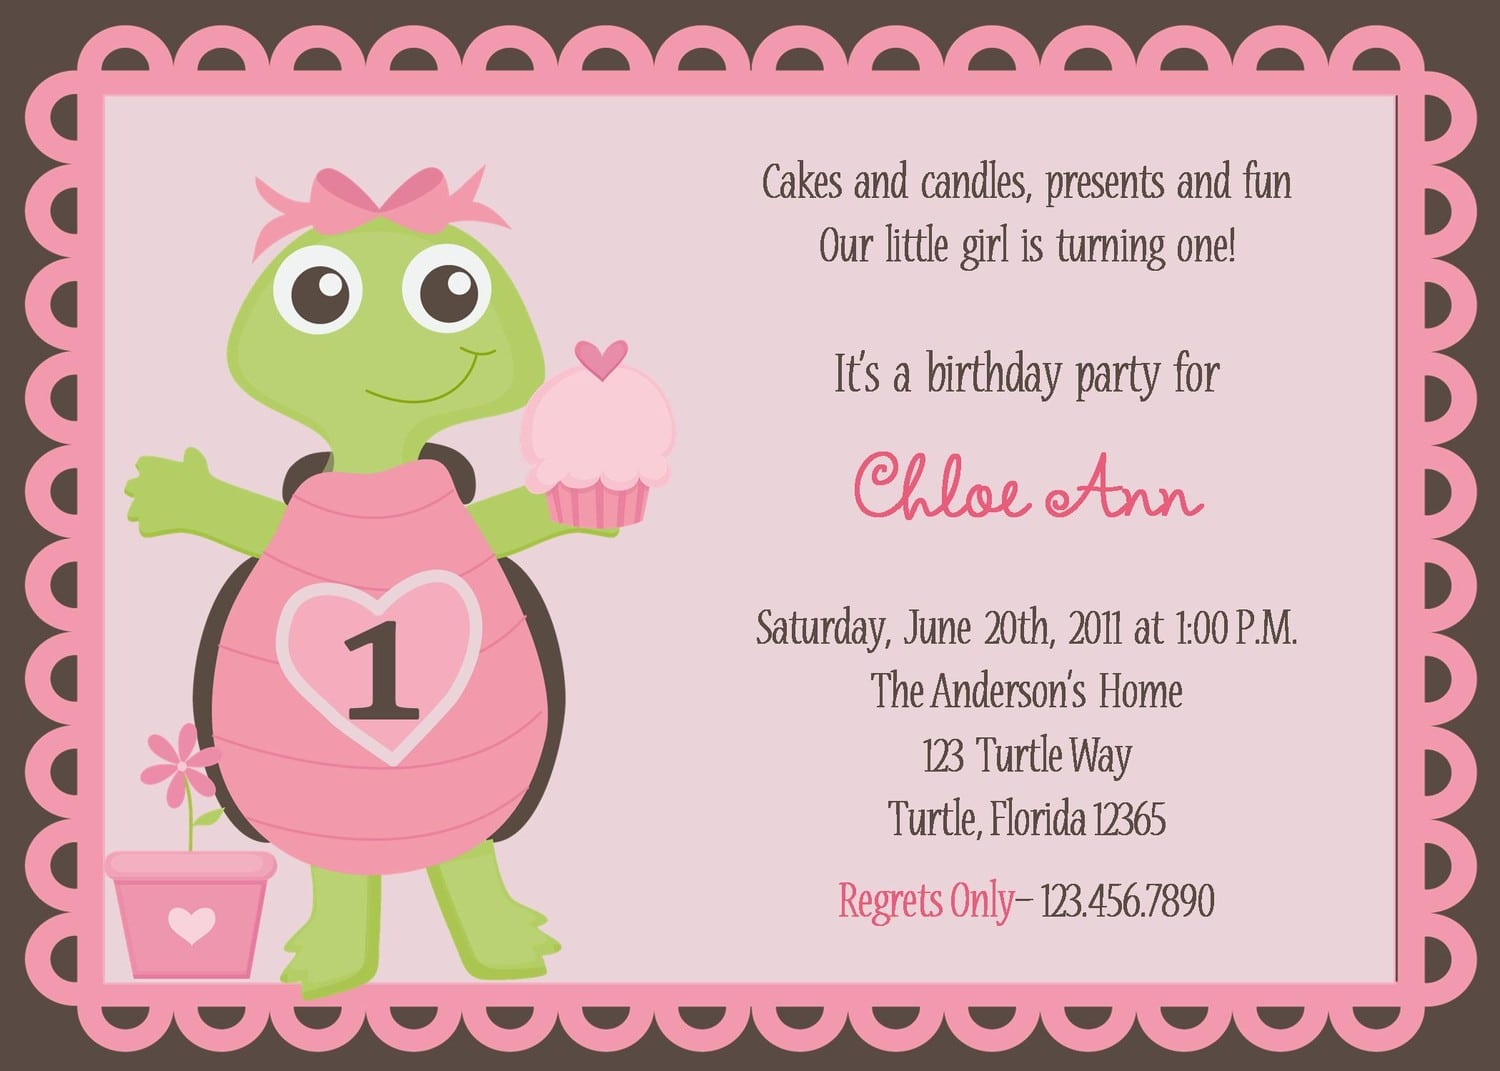 Invitations - Page 6 of 239 - Mickey Mouse Invitations Templates